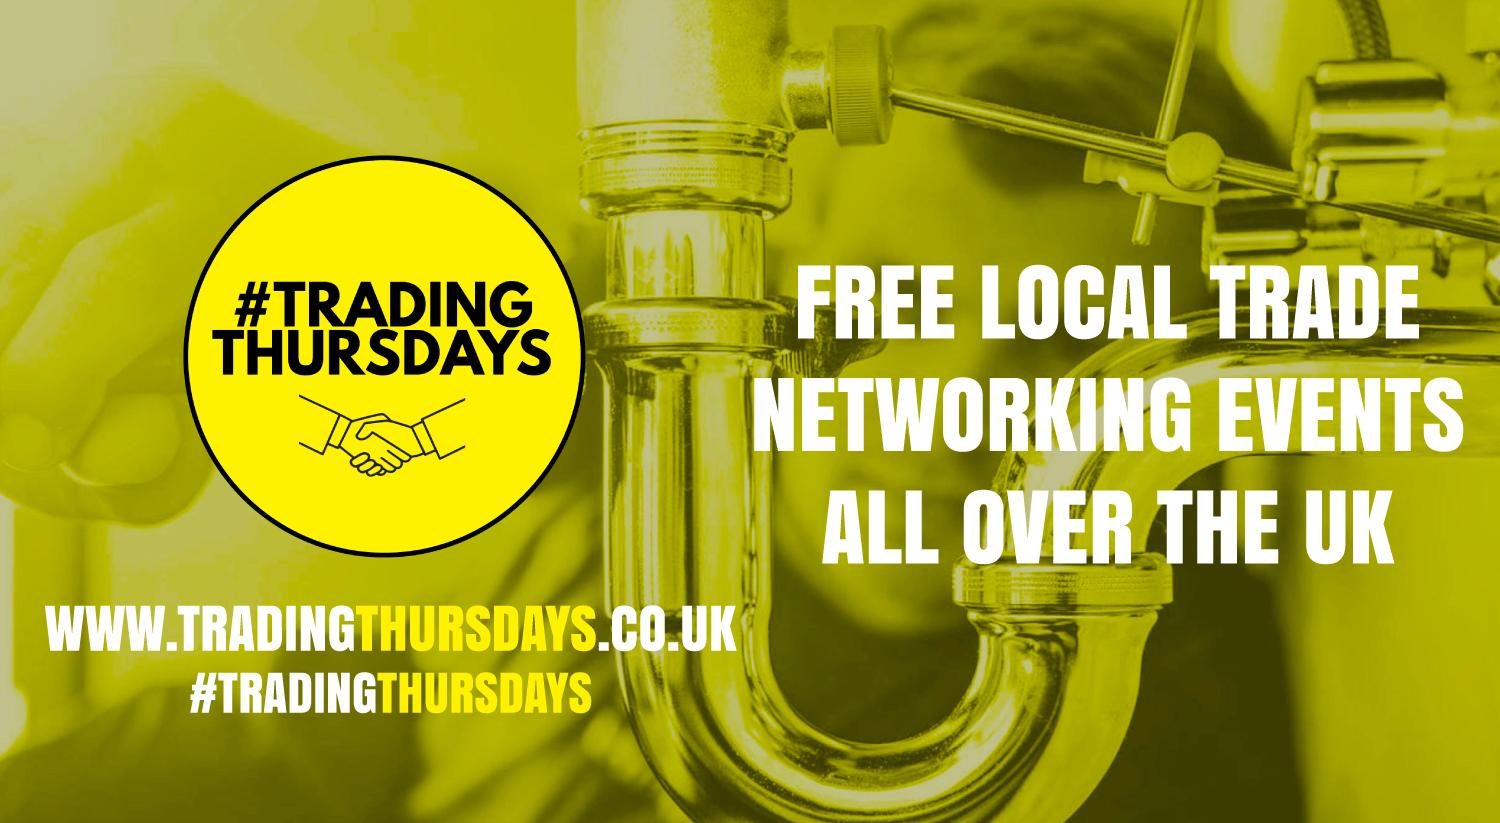 Trading Thursdays! Free networking event for traders in New Brighton